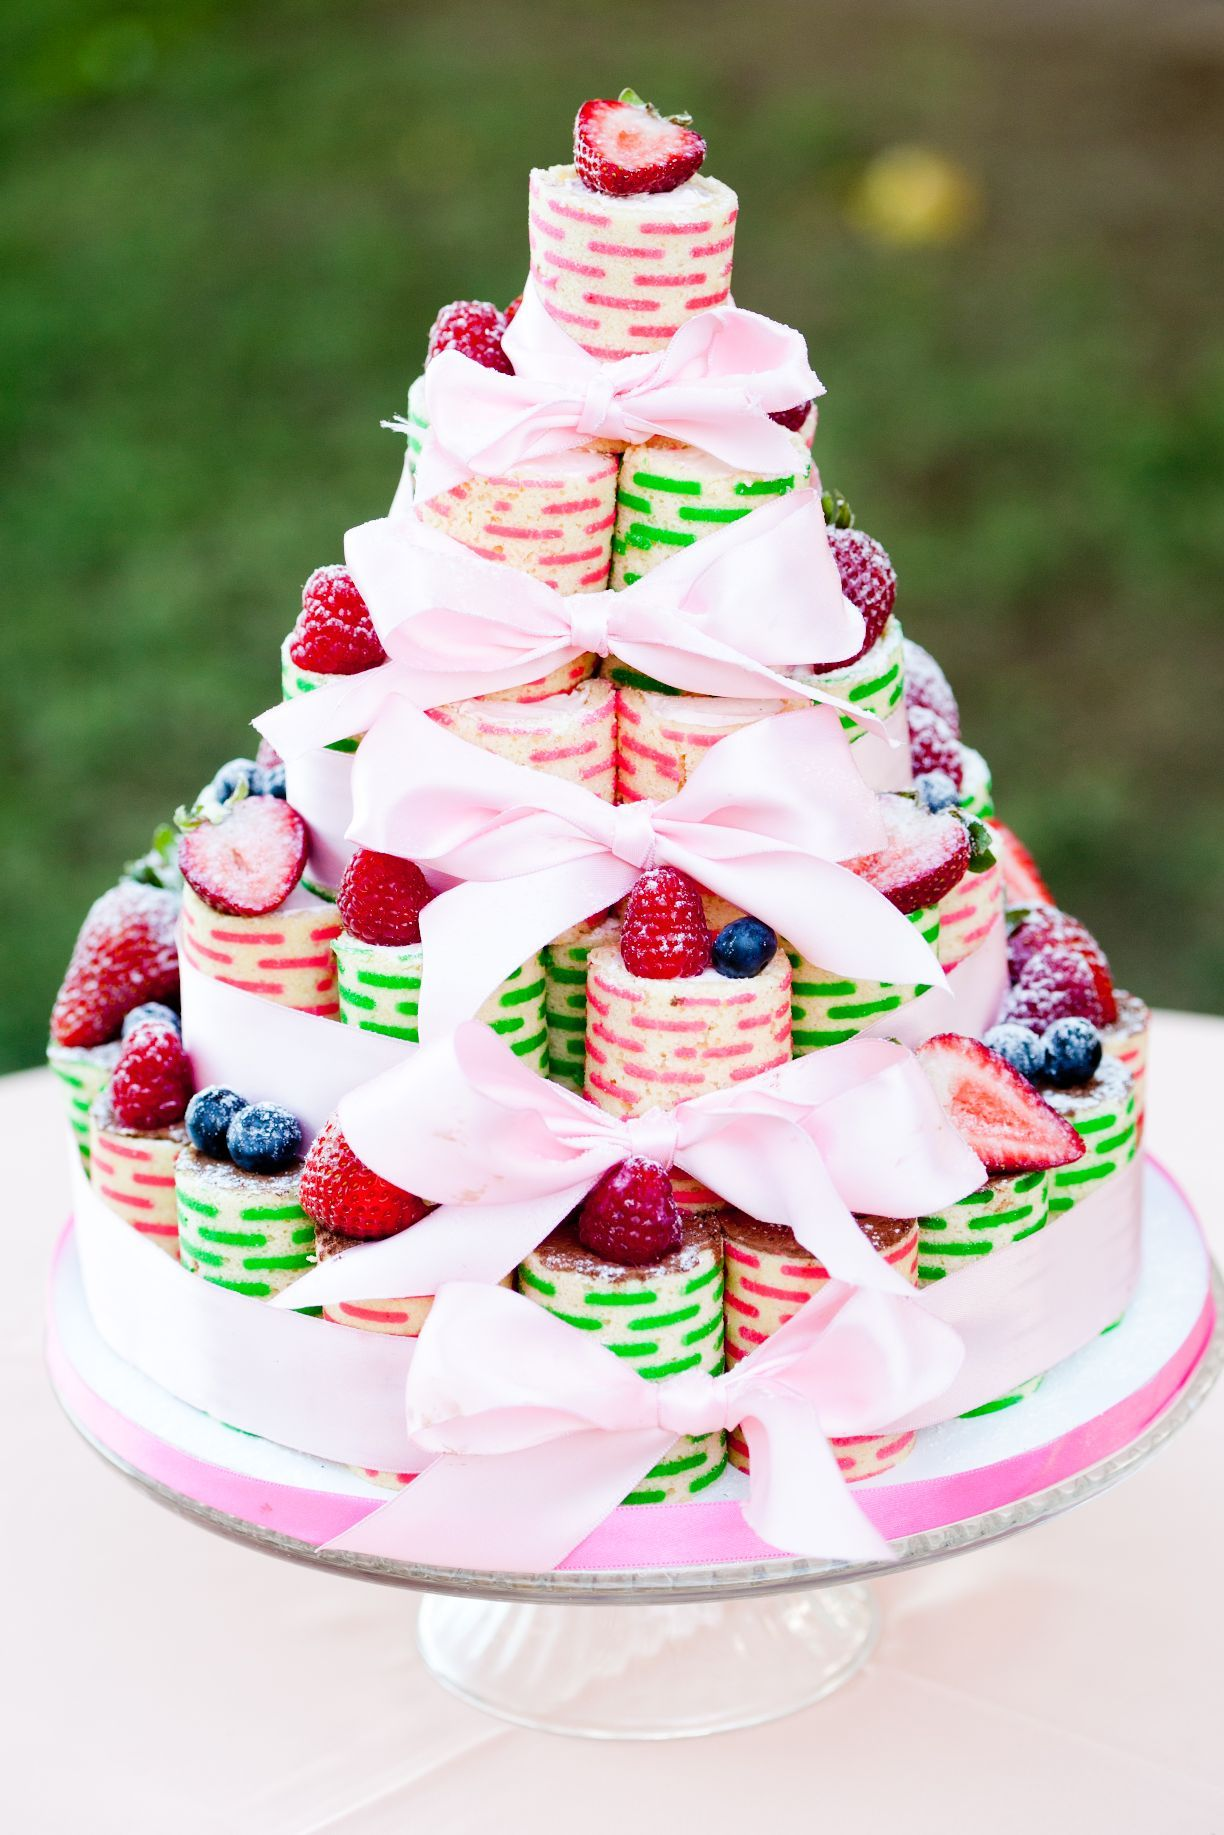 Roll Cake Tower By Cake Works Photo By Hiko Arasaki Wedding Cake - Cake Works Wedding Works